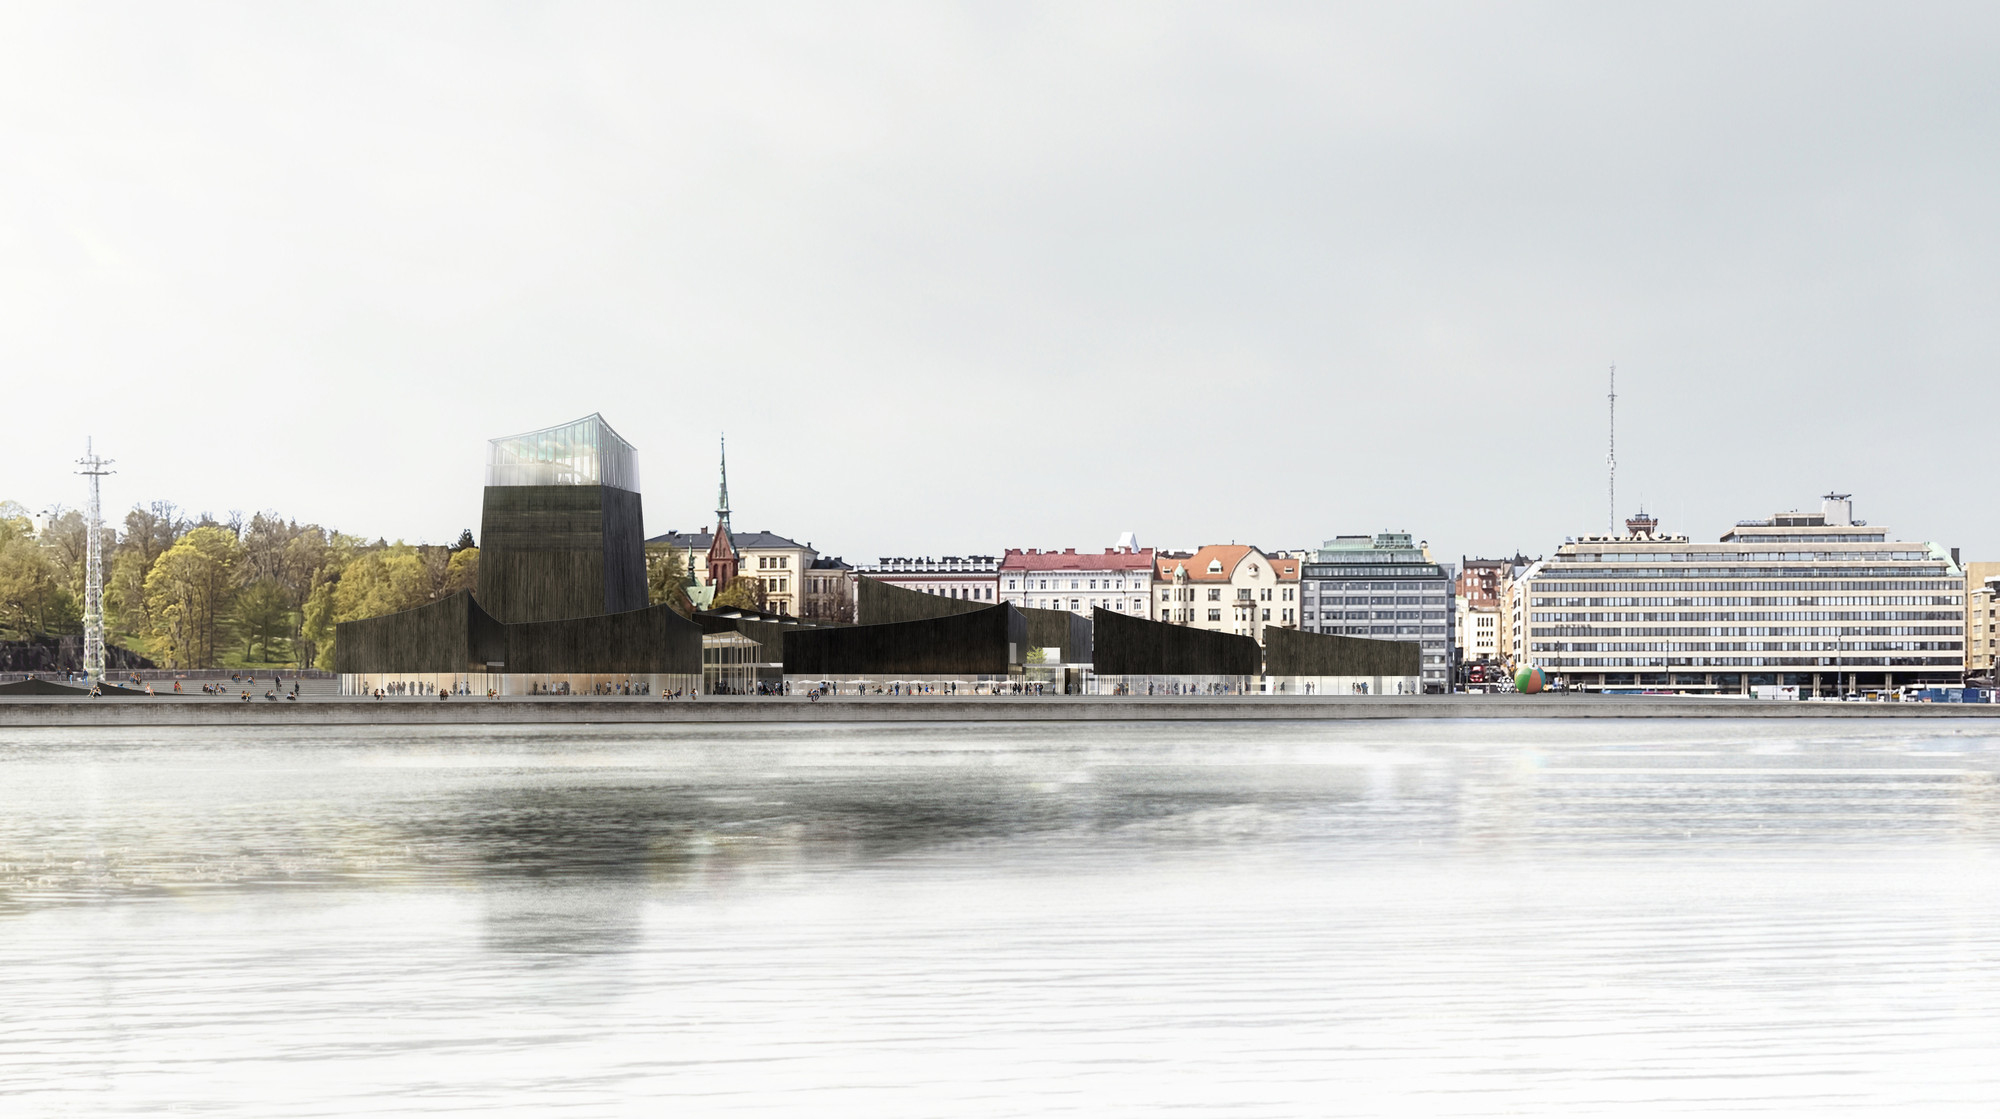 Moreau Kusunoki's 'Art in the City' Proposal Wins Guggenheim Helsinki Competition, Winning proposal. Image © Moreau Kusunoki Architectes / Guggenheim